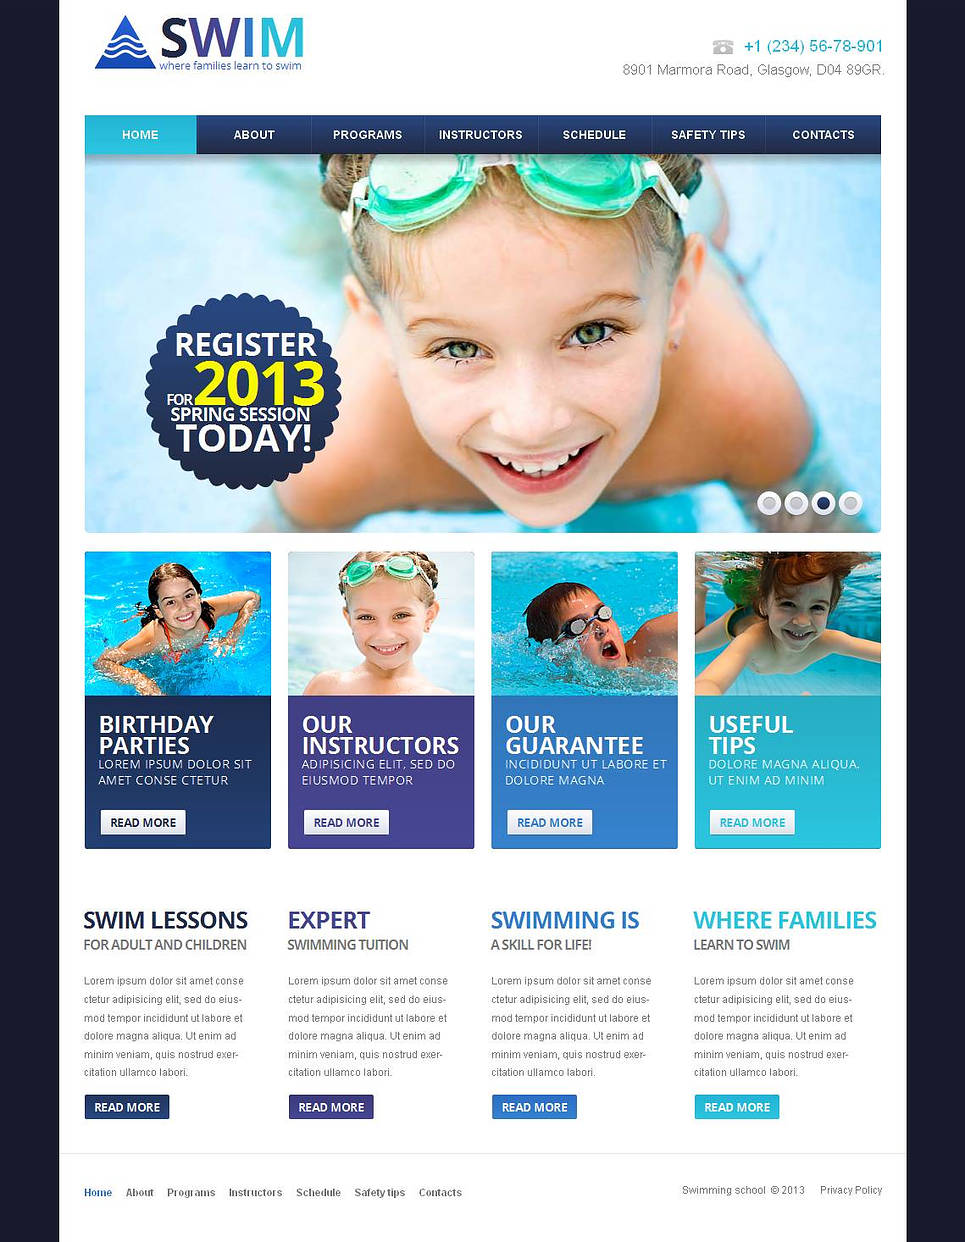 Swimming School Website Template for Children and Families - image